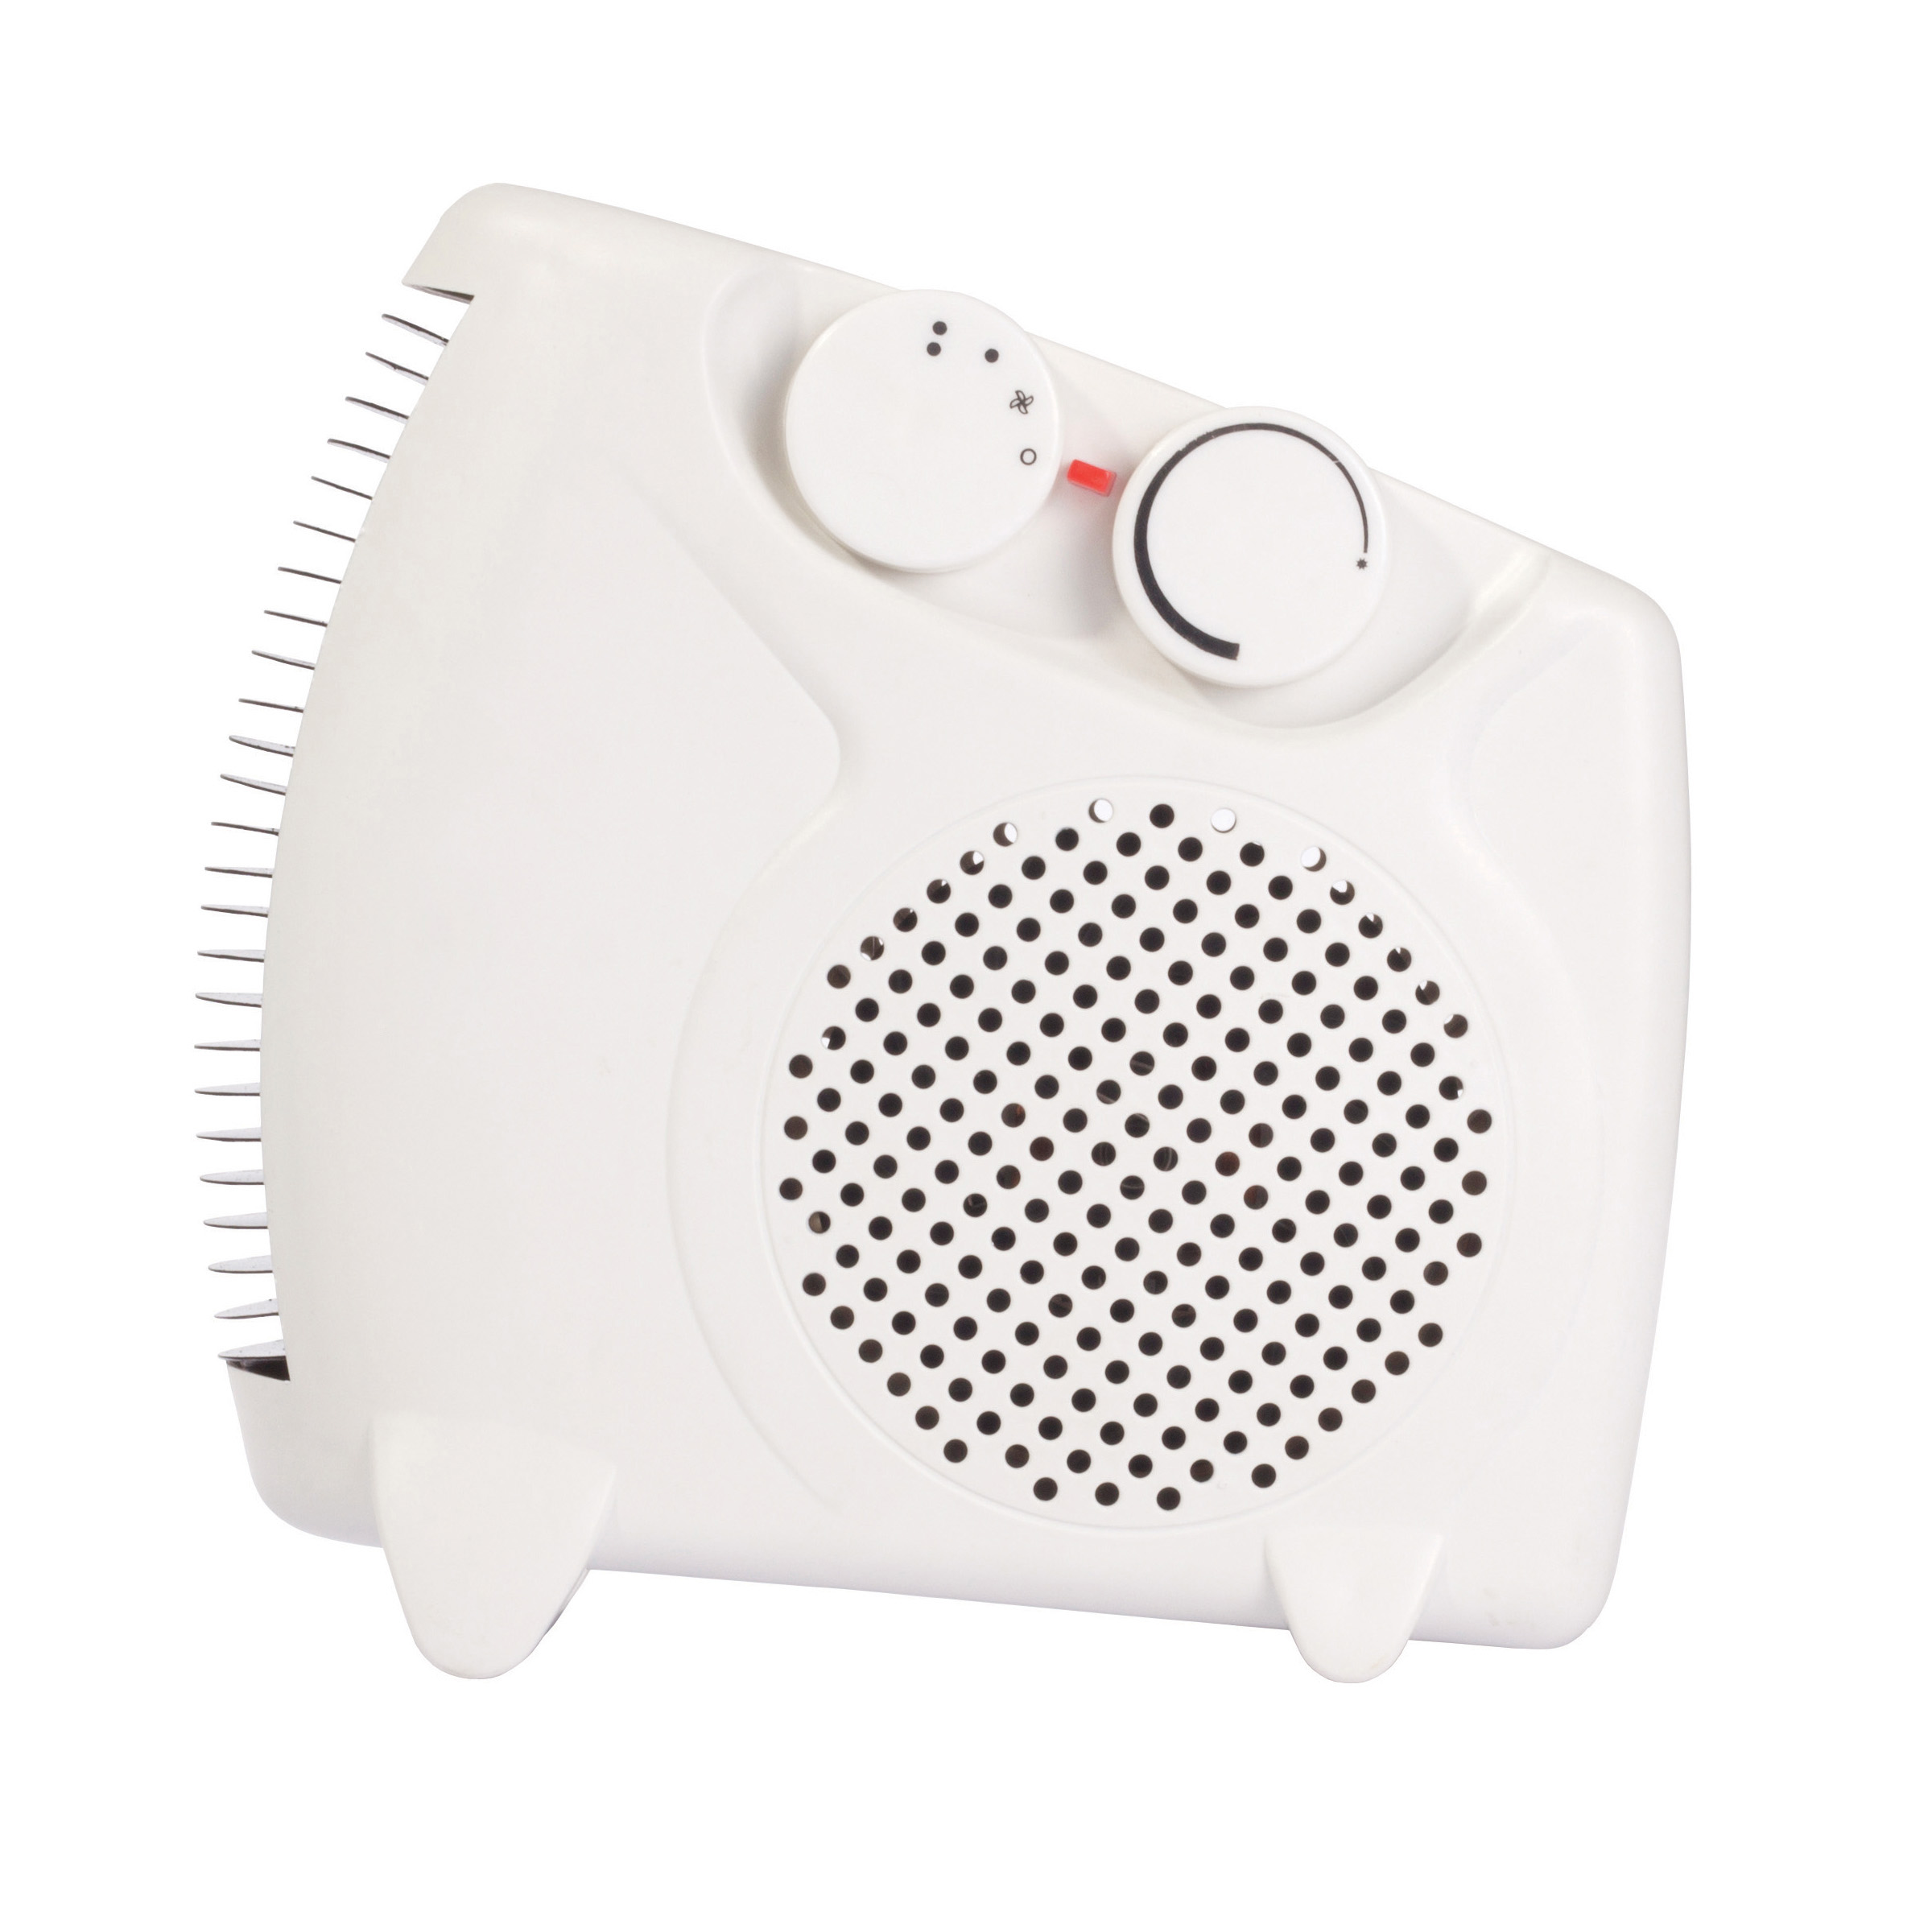 Igenix 2kW Uprigh/Flat Fan Heater White Ref IG9010